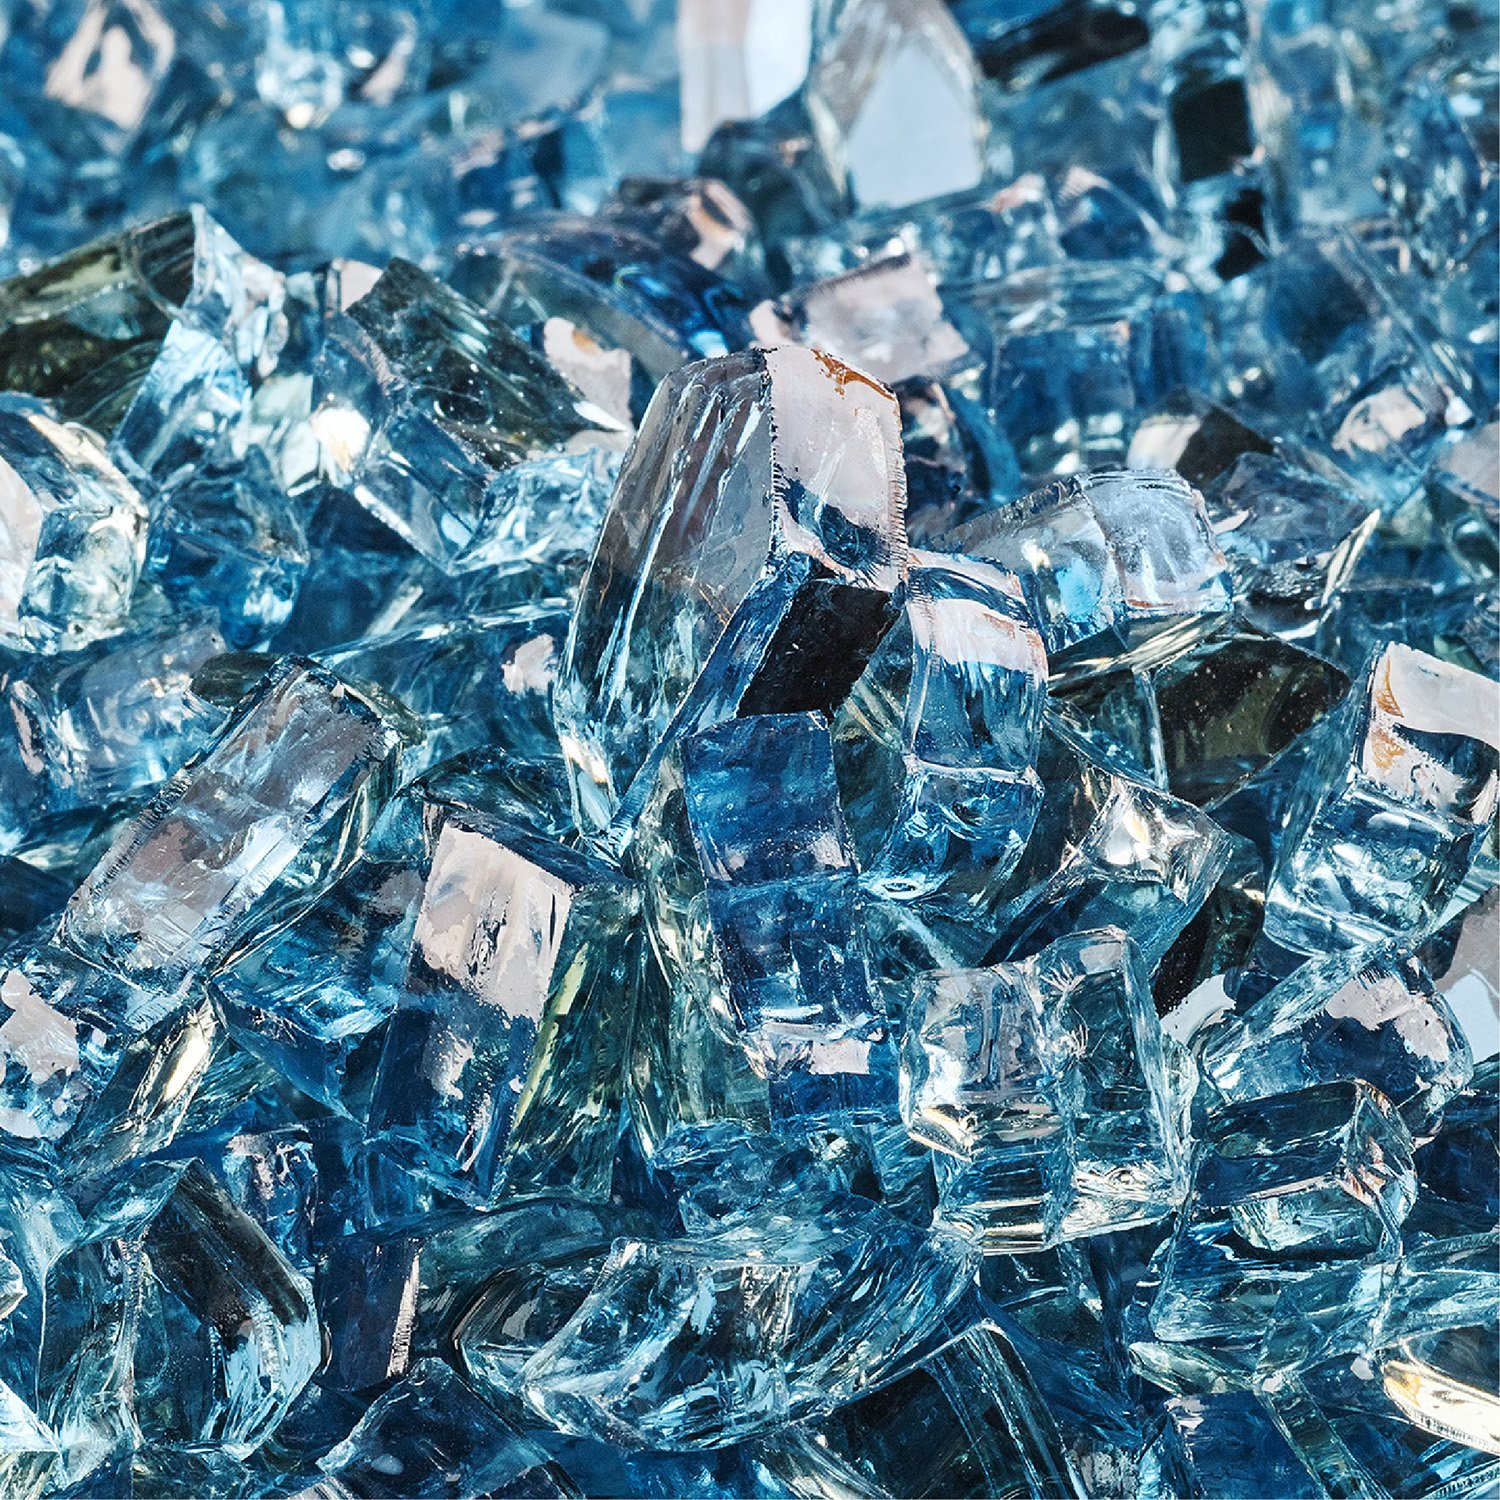 Harbor Mist - Fire Glass for Indoor and Outdoor Fire Pits or Fireplaces | 10 Pounds | 1/4 Inch, Reflective